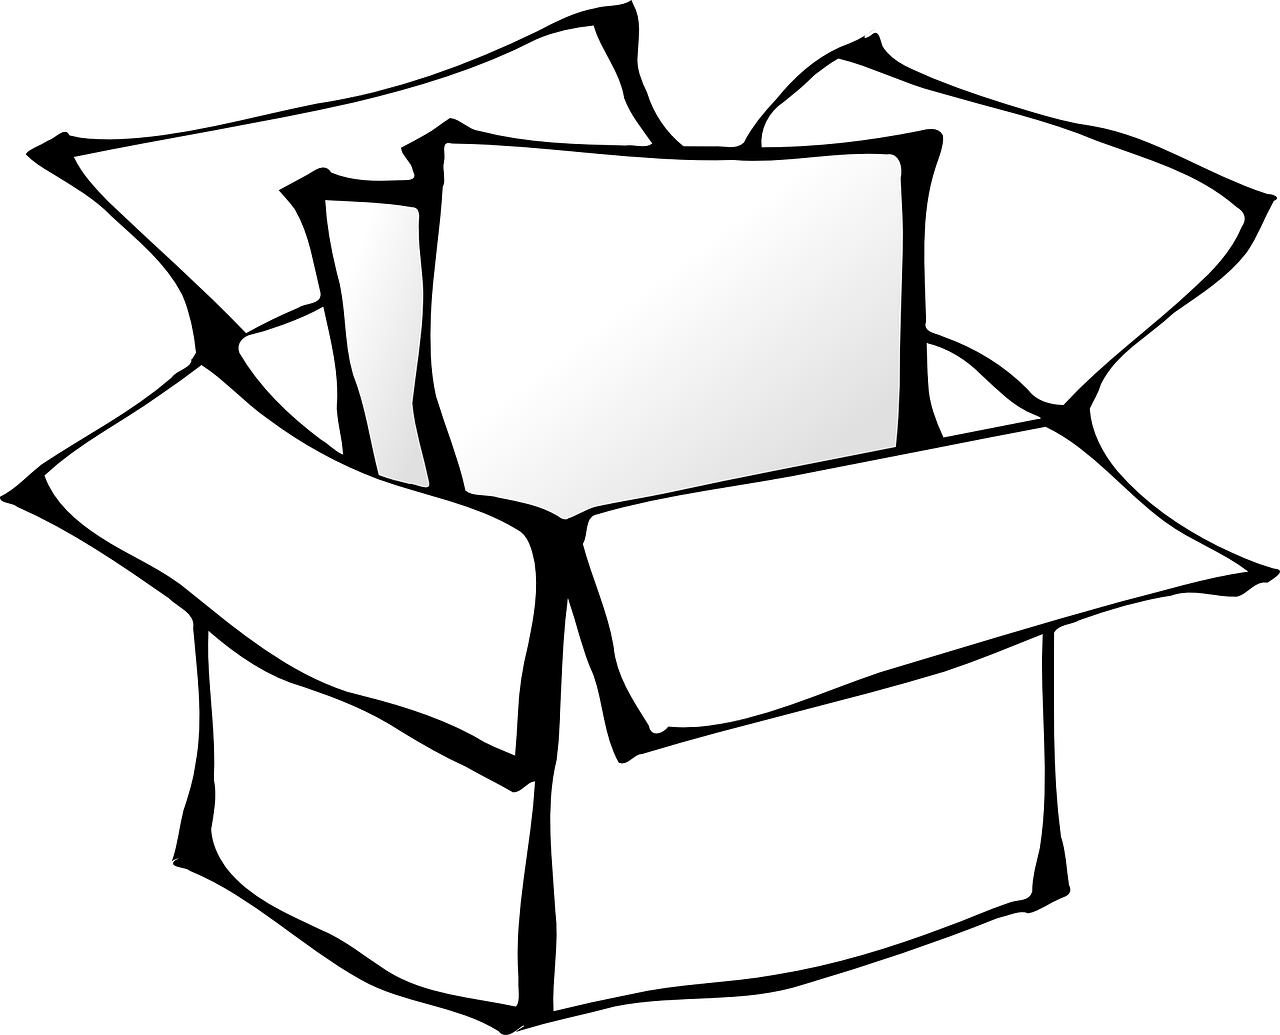 Packaging for post